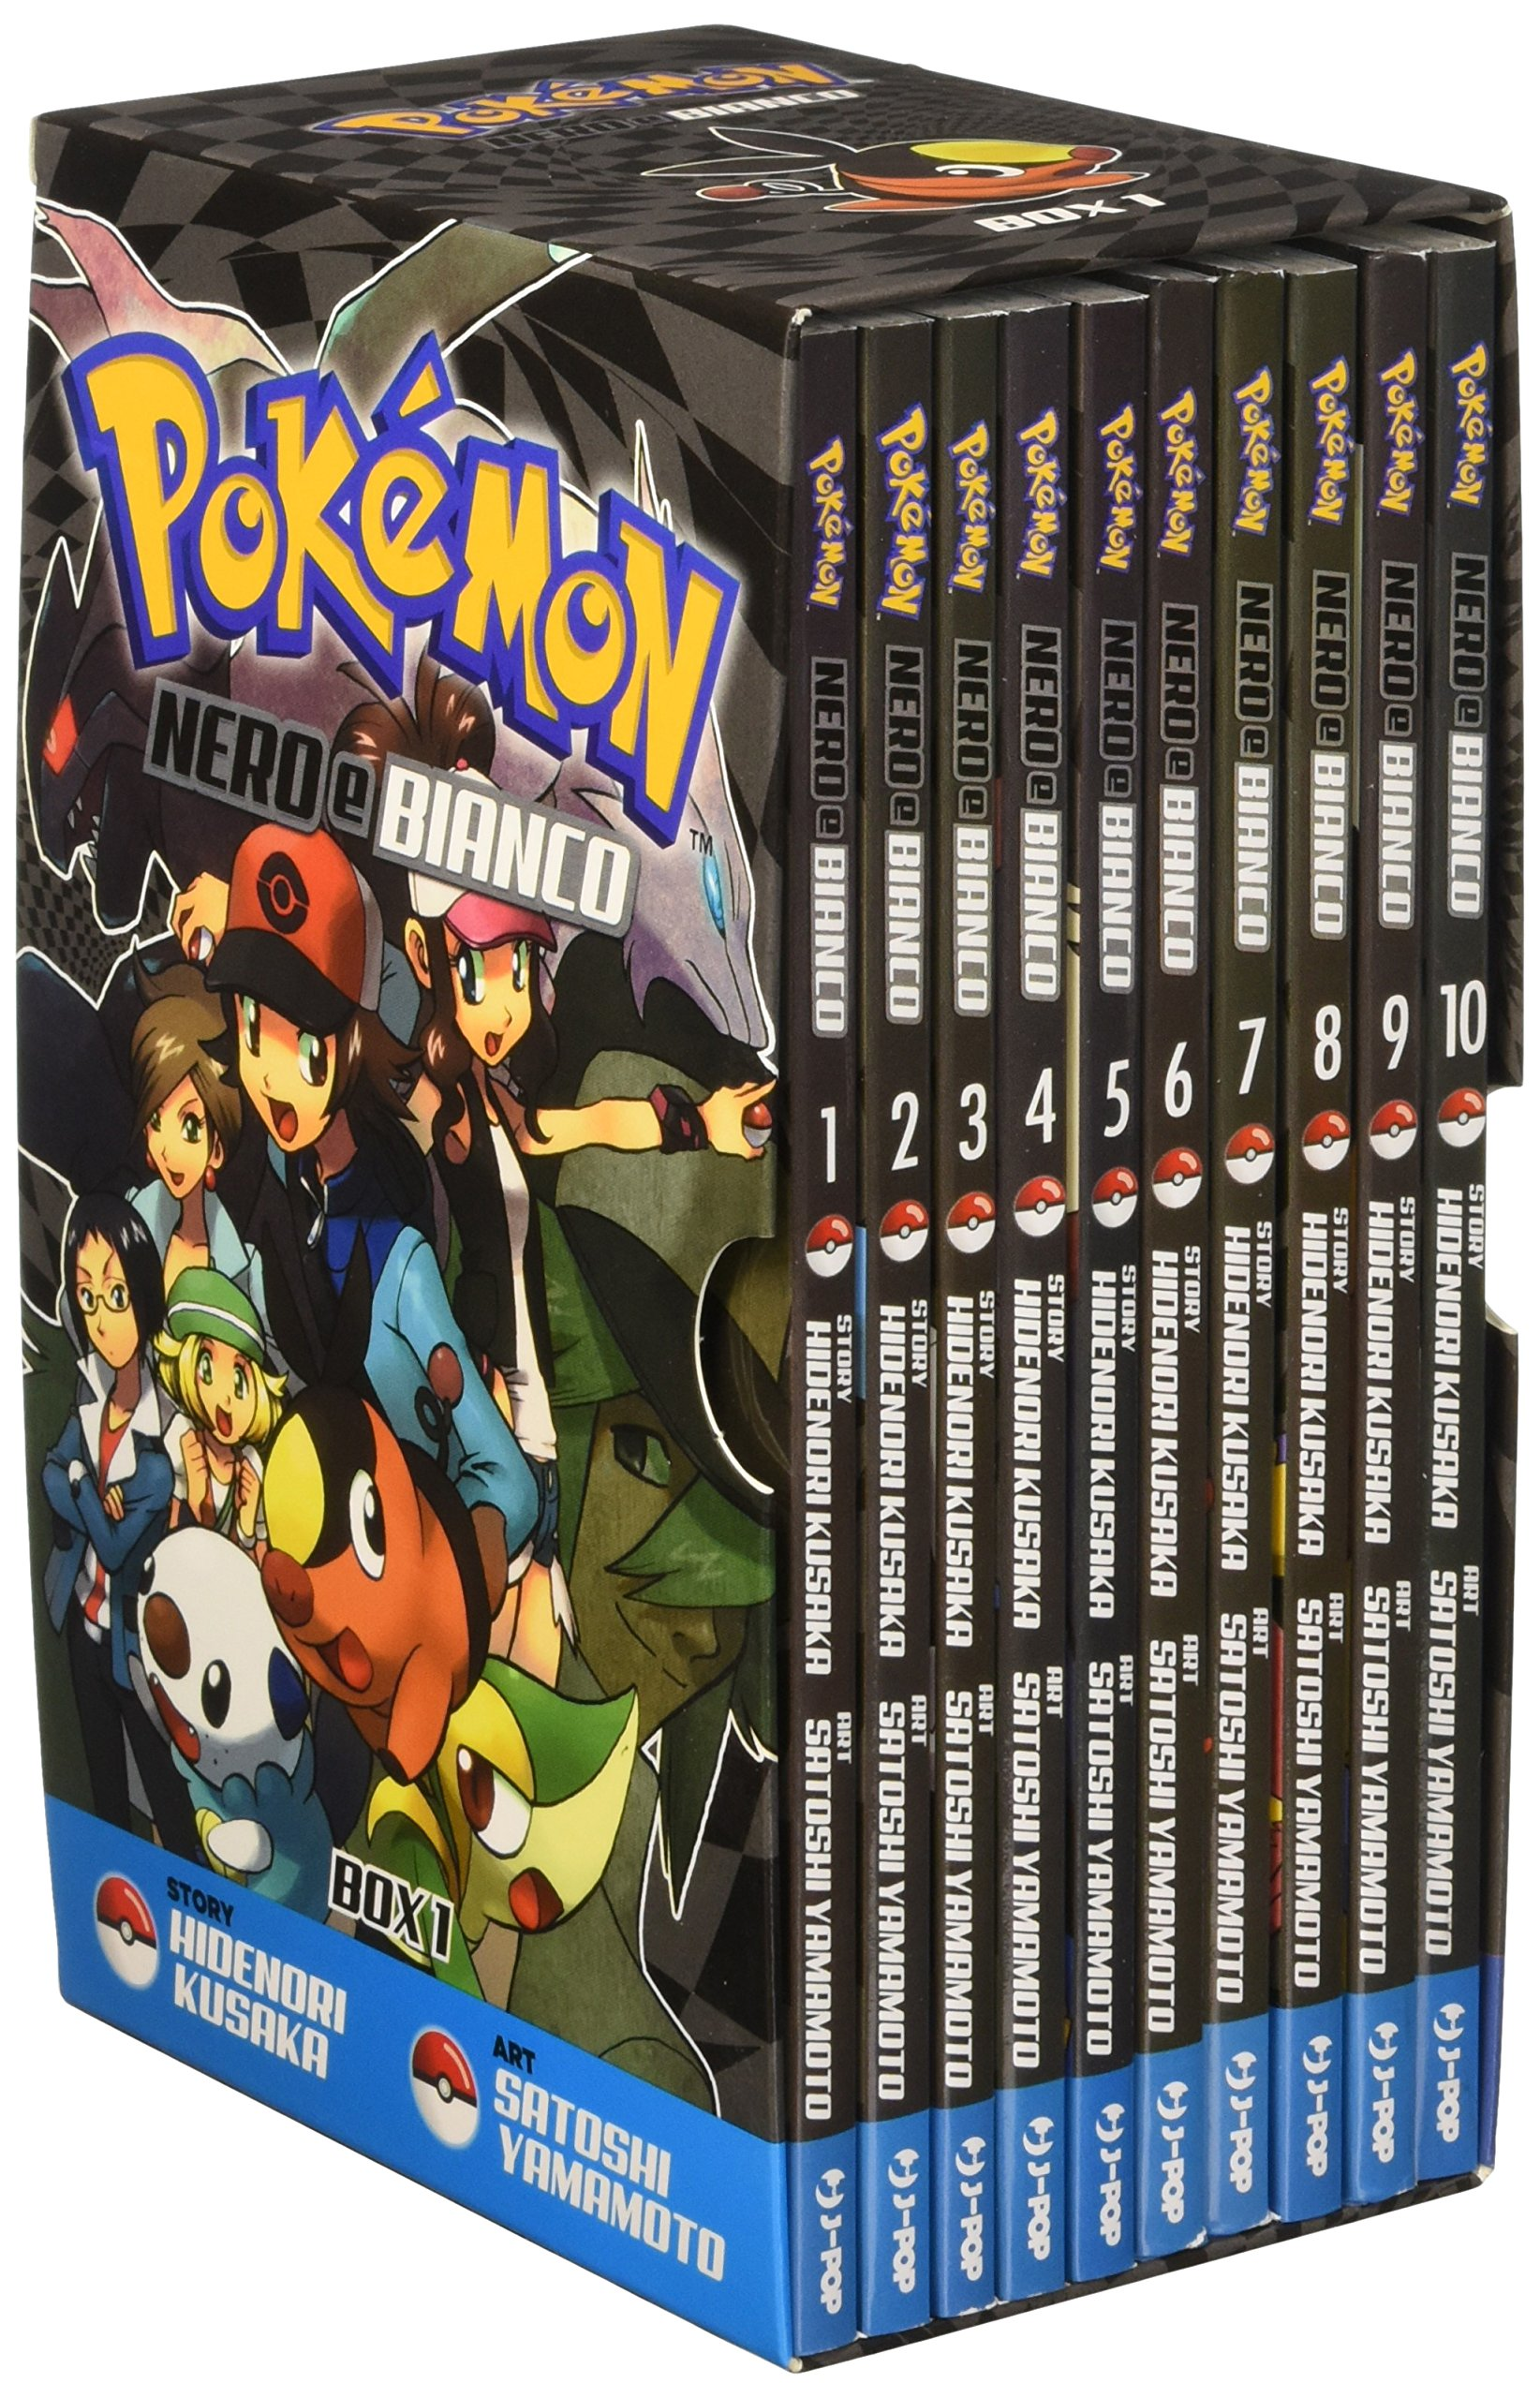 Pokémon Nero e Bianco box 1 Johto World